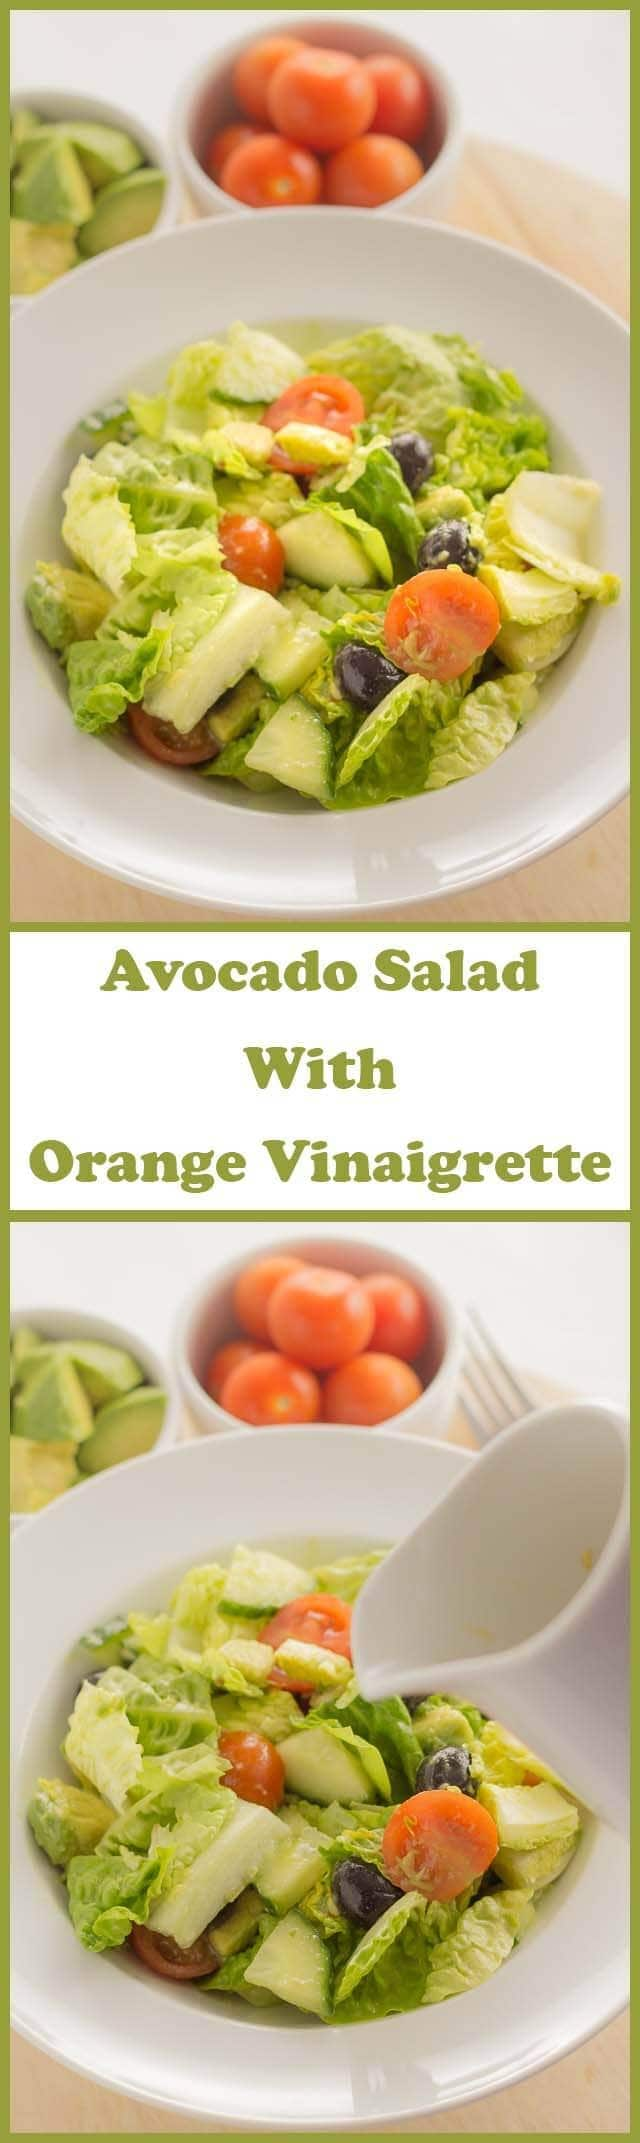 Avocado salad with orange vinaigrette is a simple low calorie 10 minutes freshly prepared salad with a sweet and tangy fresh tasting dressing. Perfect for packed lunches!